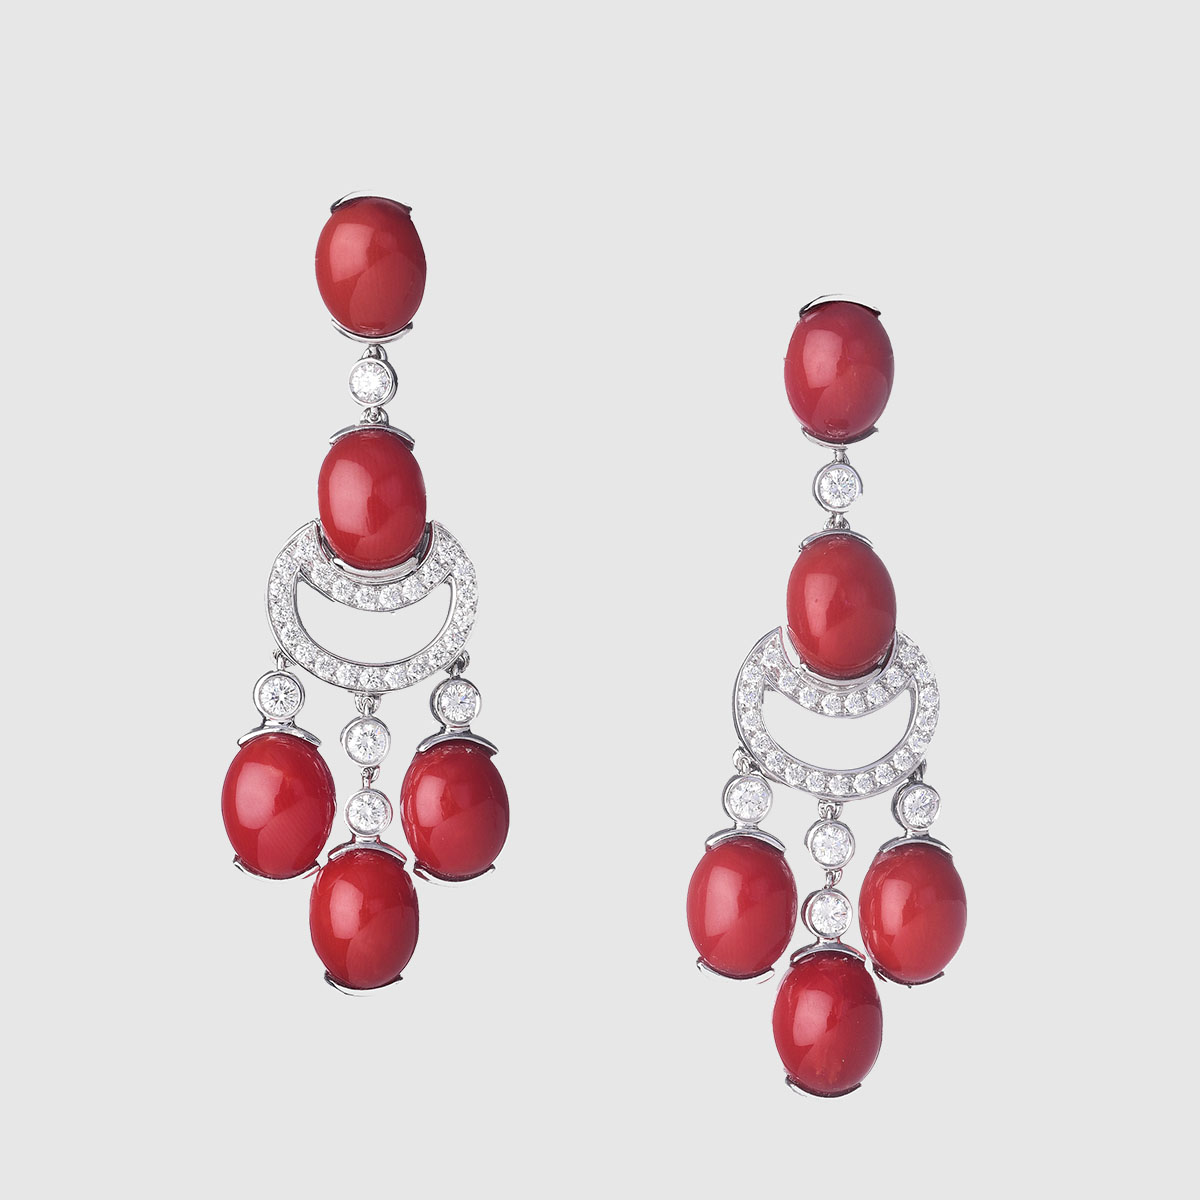 Oval Cabochon corals White gold earrings